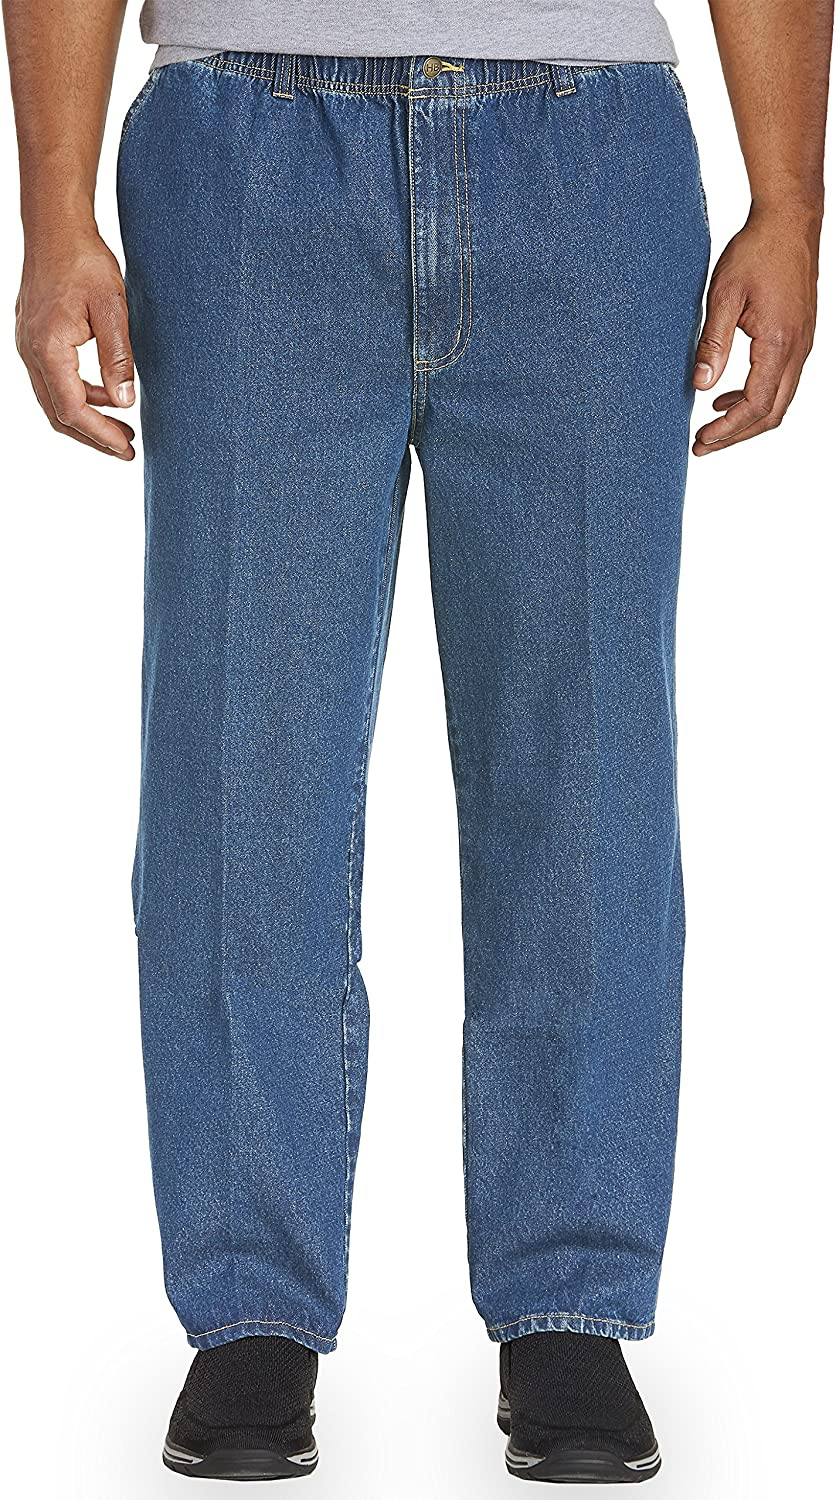 Dedication Harbor Bay by DXL Big Long Beach Mall Tall Full-Elastic and Jeans